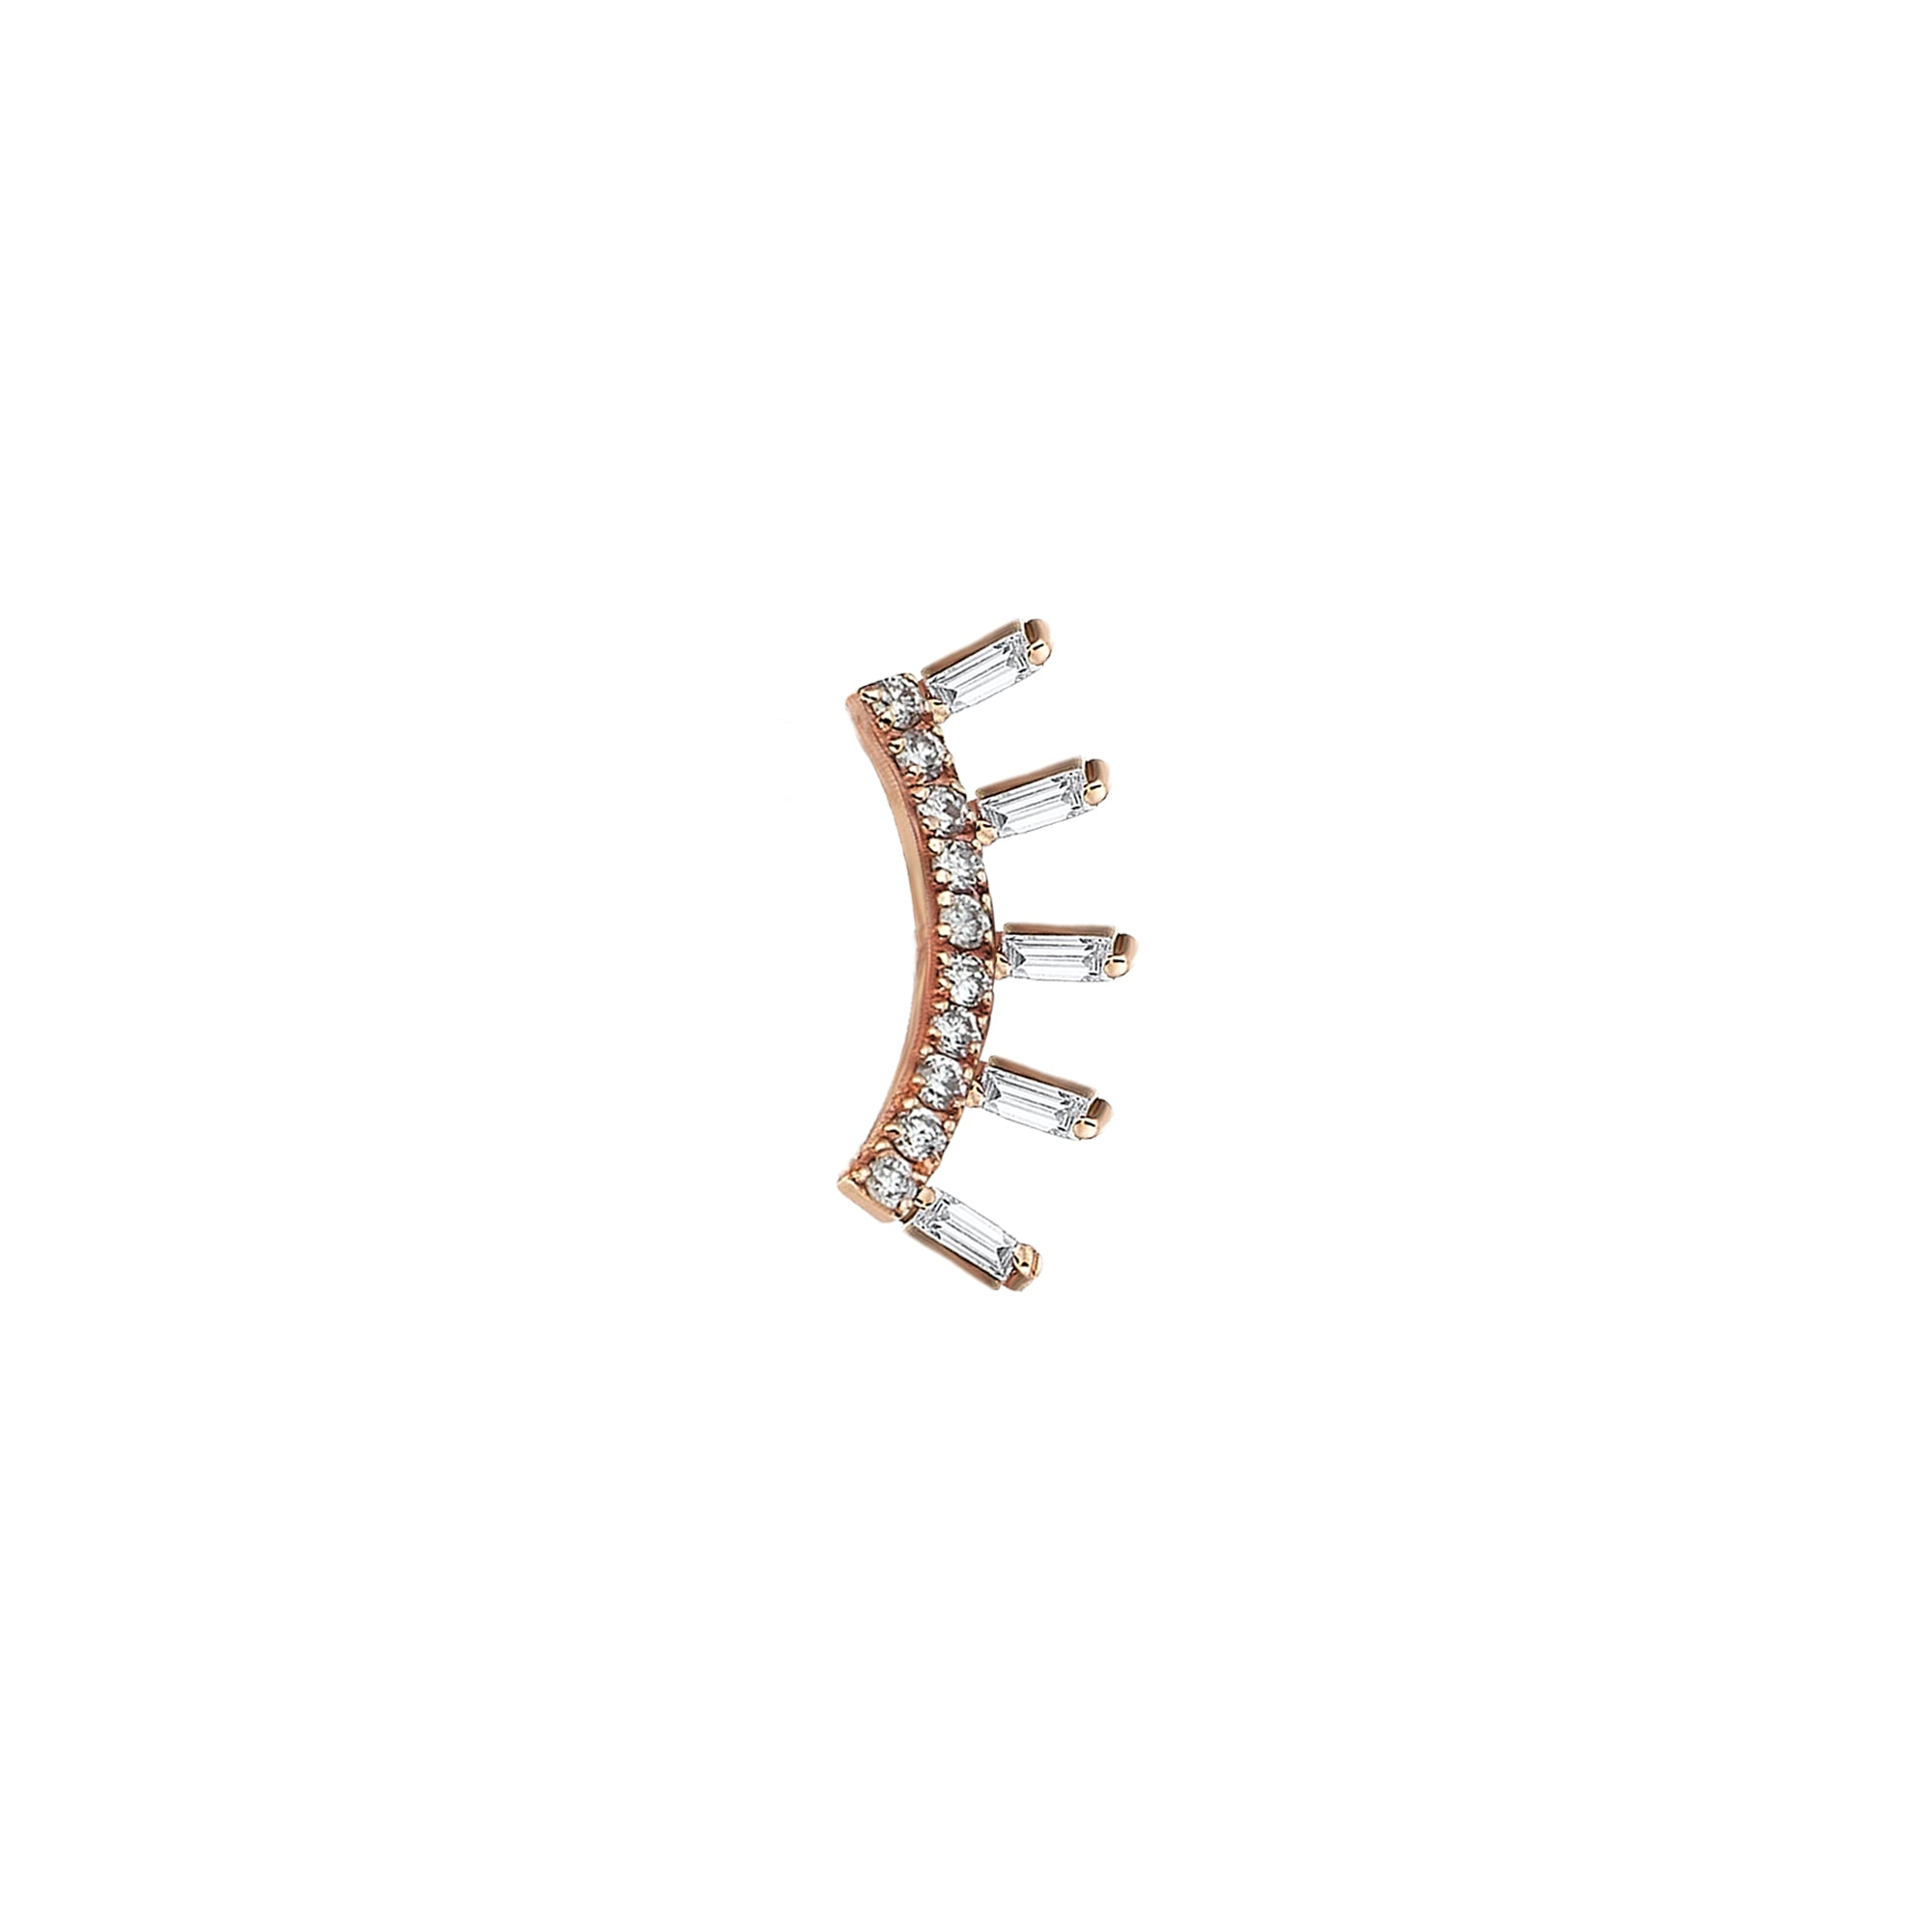 Ladder Baguette Stud Earring - Kismet by Milka - Earrings | Broken English Jewelry